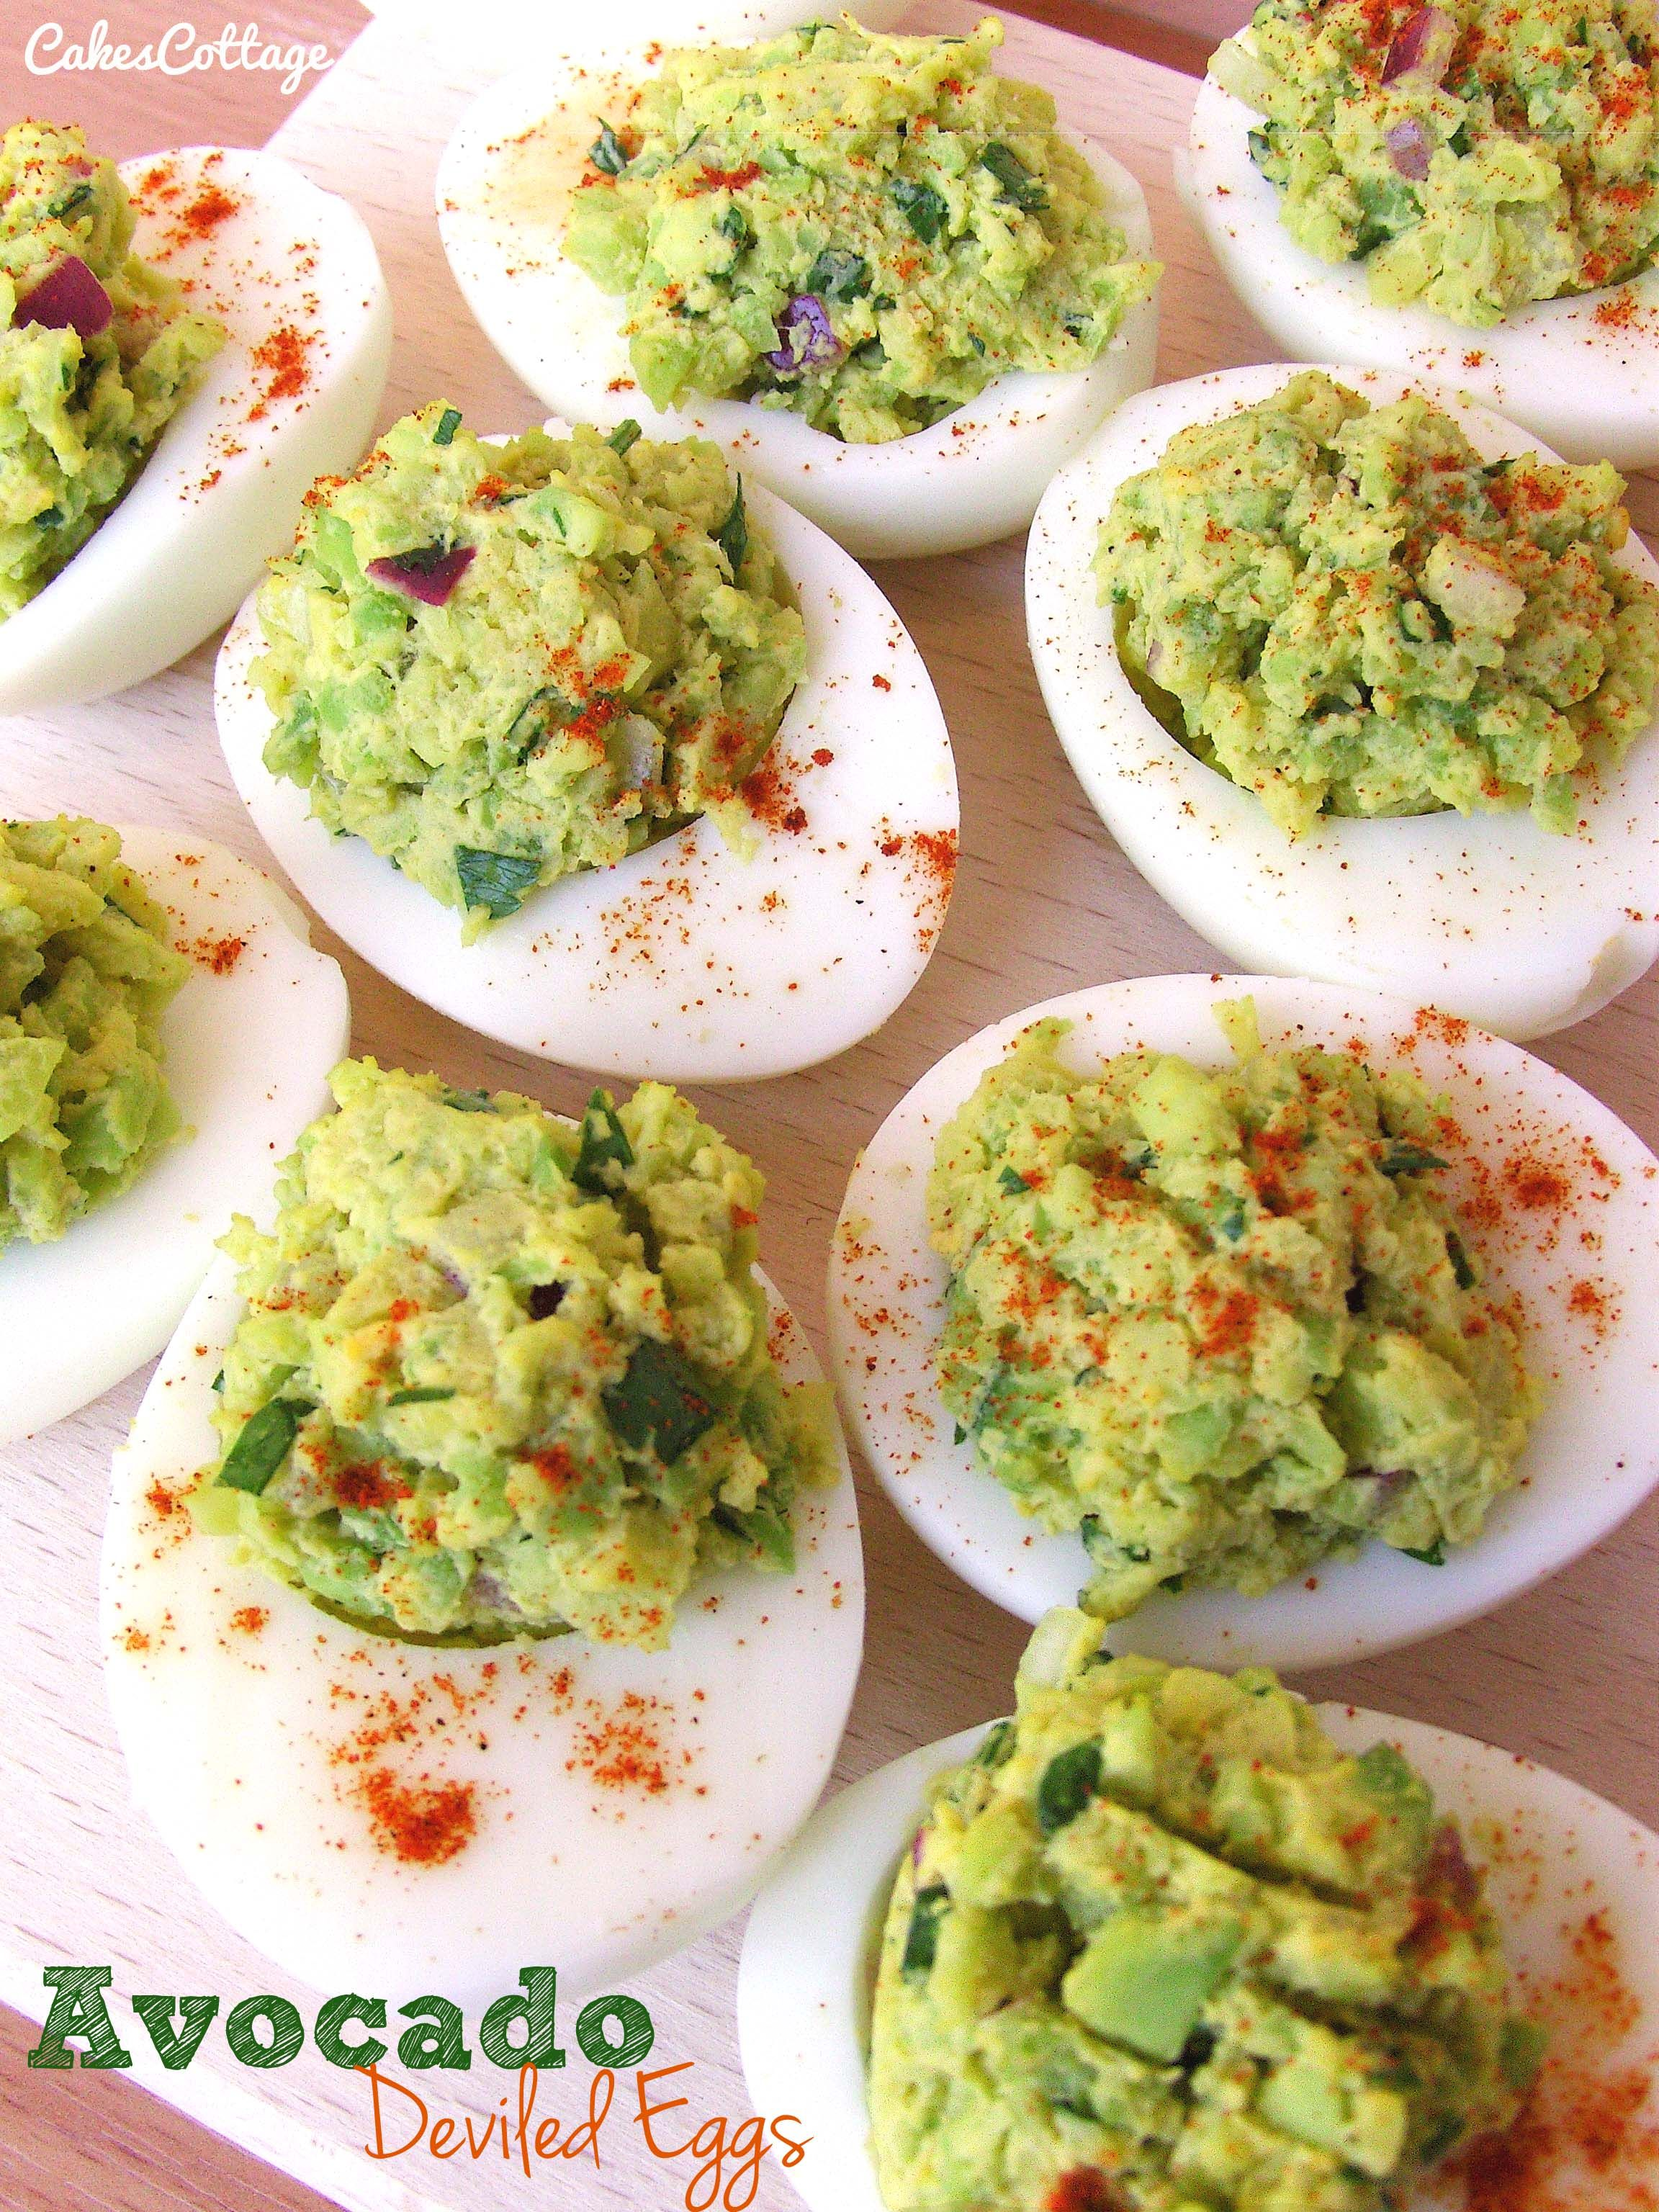 Avocado Deviled Eggs An Easy Way To Twist Your Egg Recipe For Easter